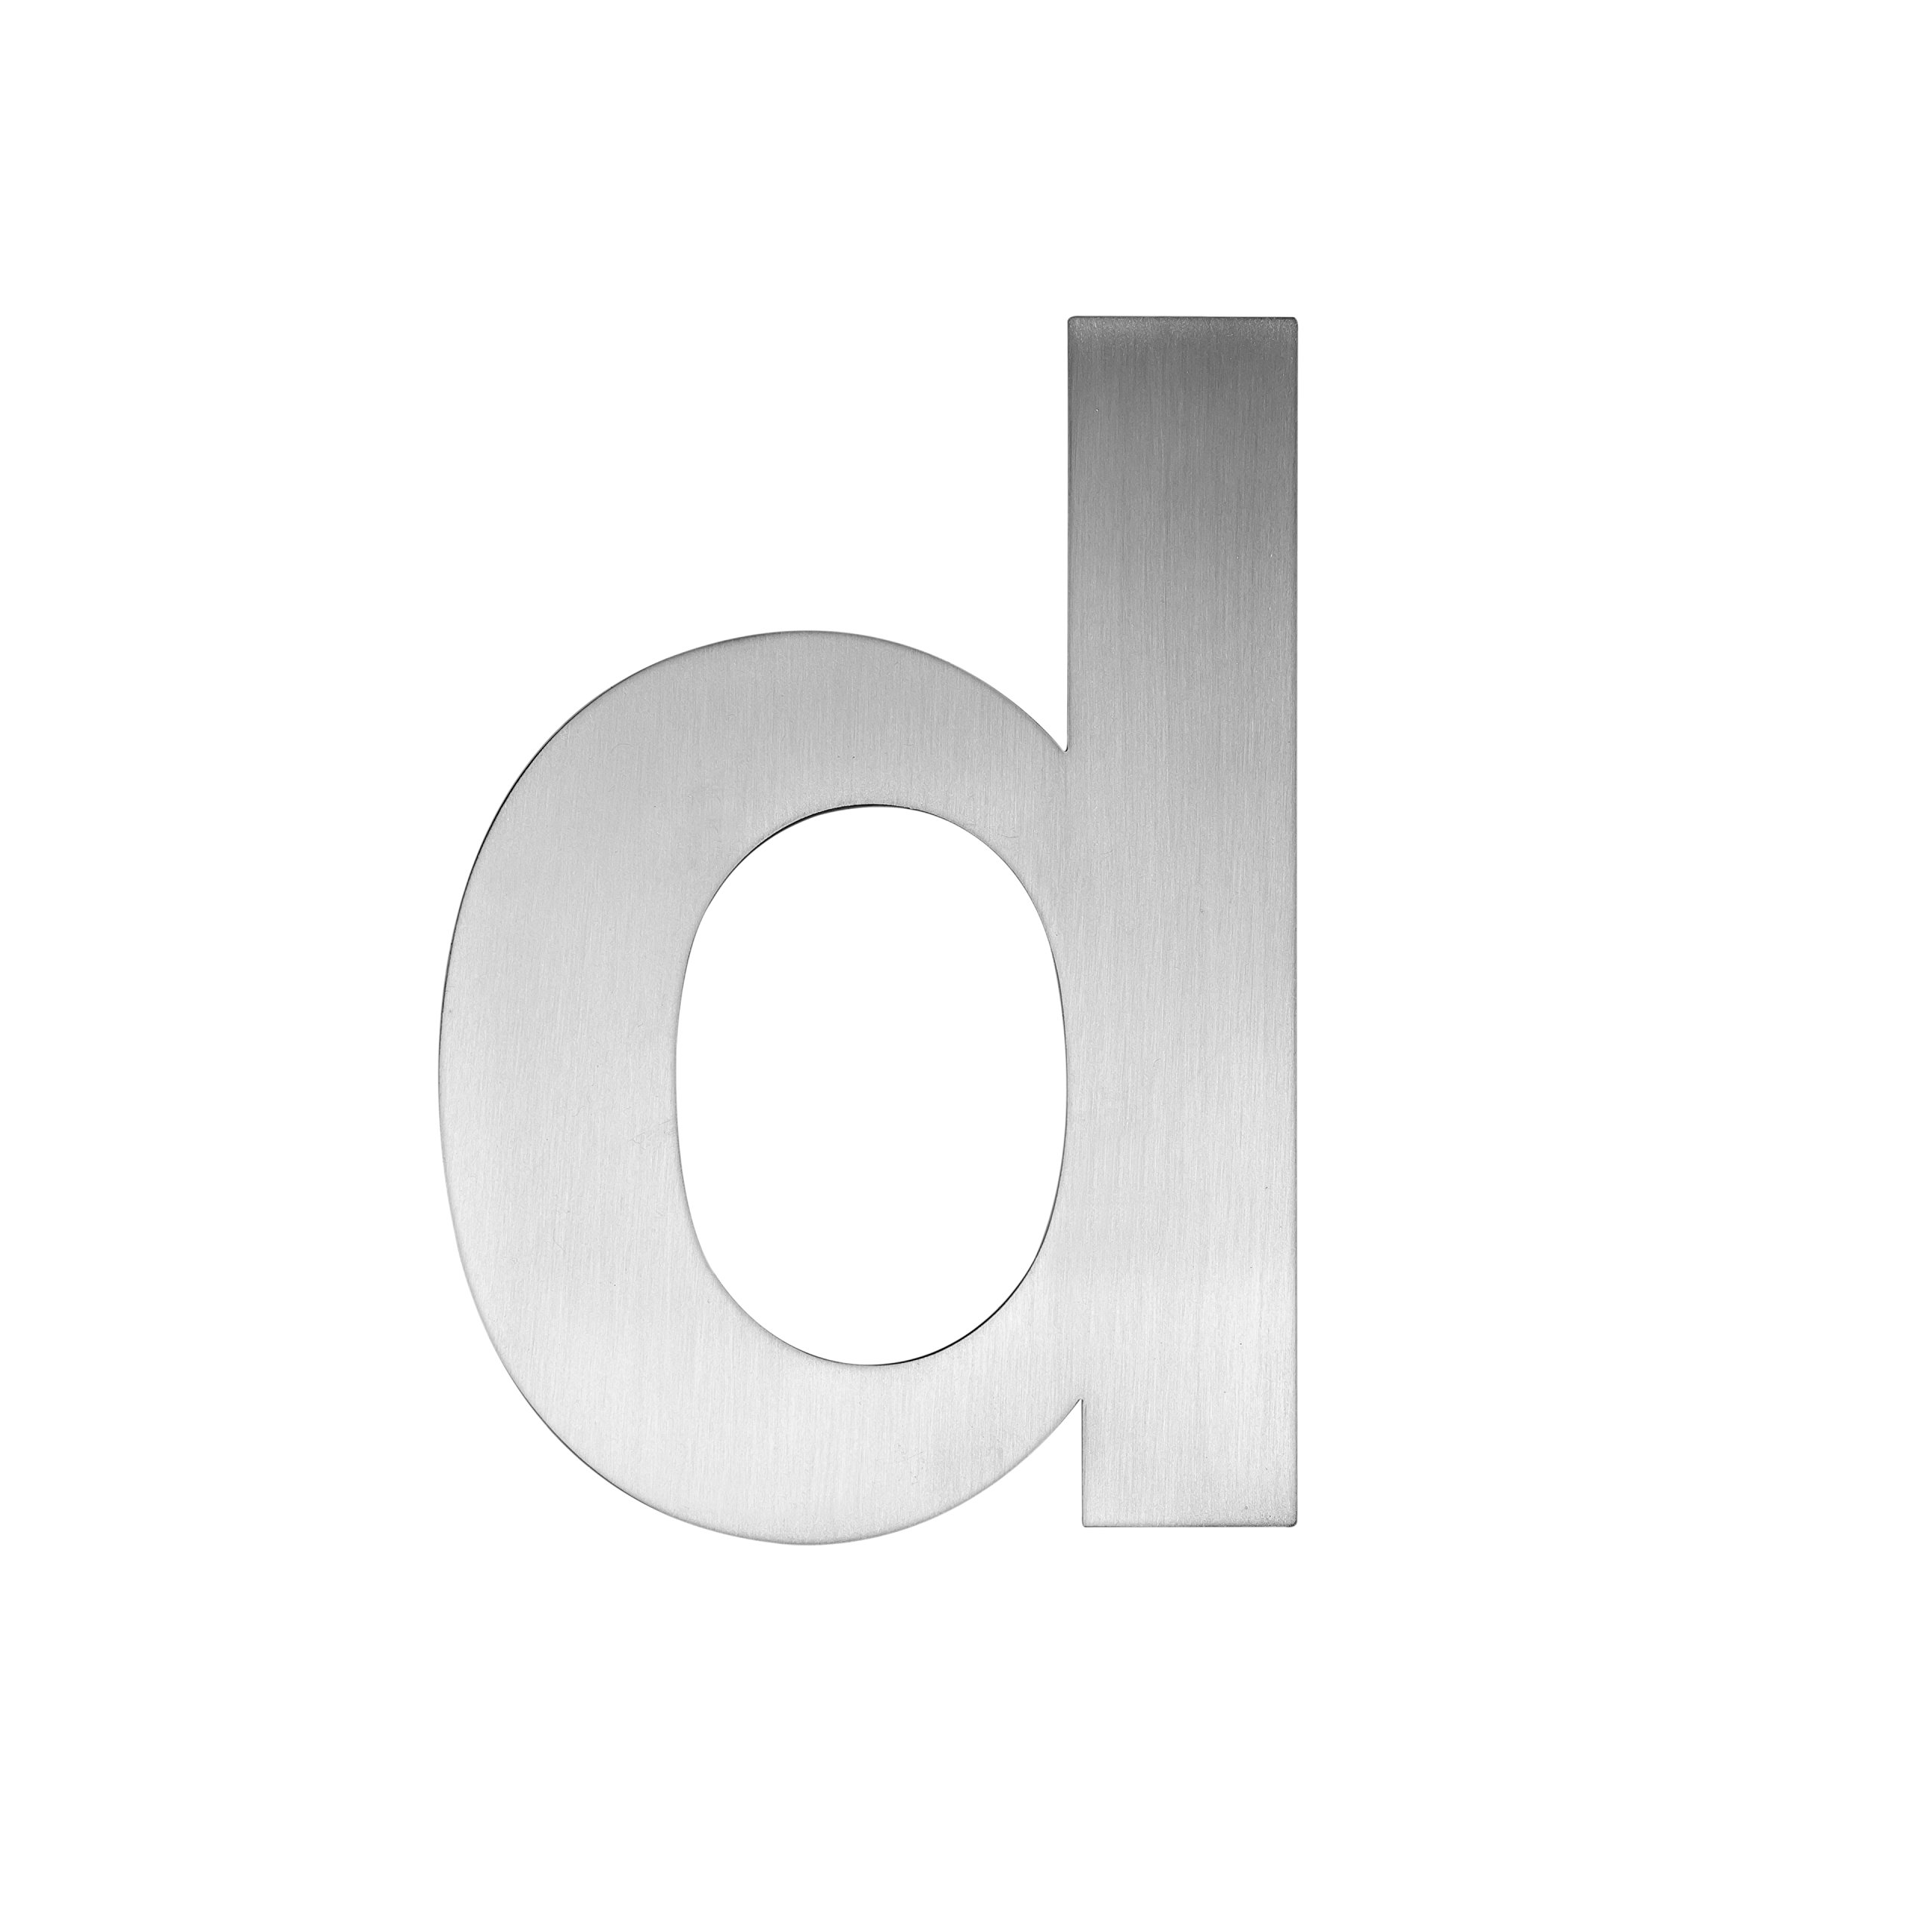 QT Modern House Number - SMALL 4 Inch - Brushed Stainless Steel (Letter d), Floating Appearance, Easy to install and made of solid 304